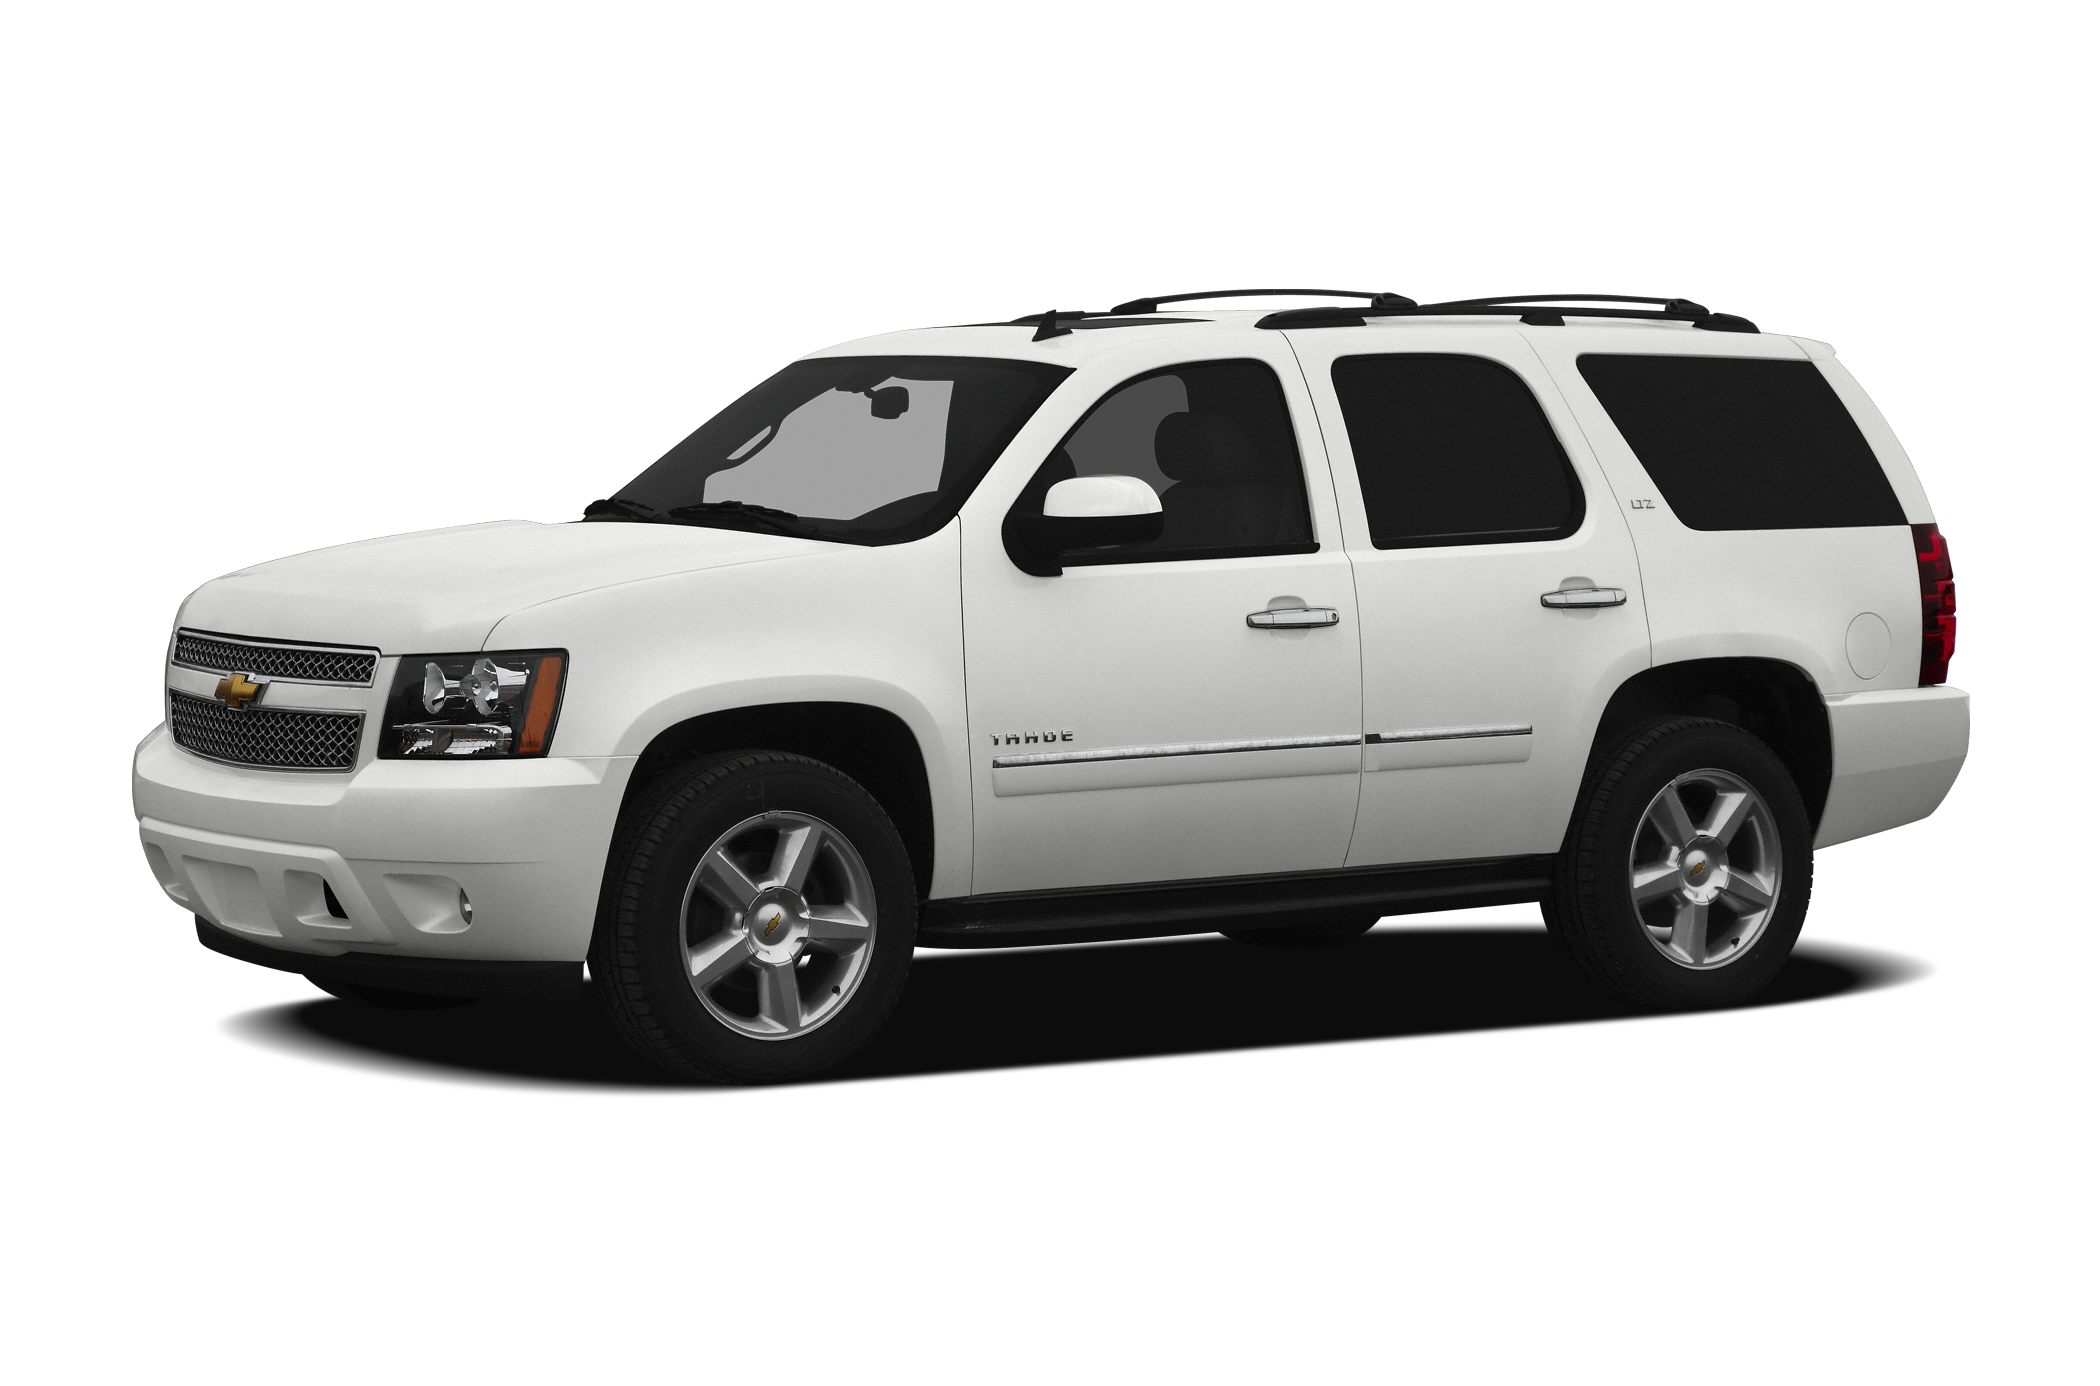 2010 Chevrolet Tahoe LT SUV for sale in Chicago for $21,500 with 100,017 miles.